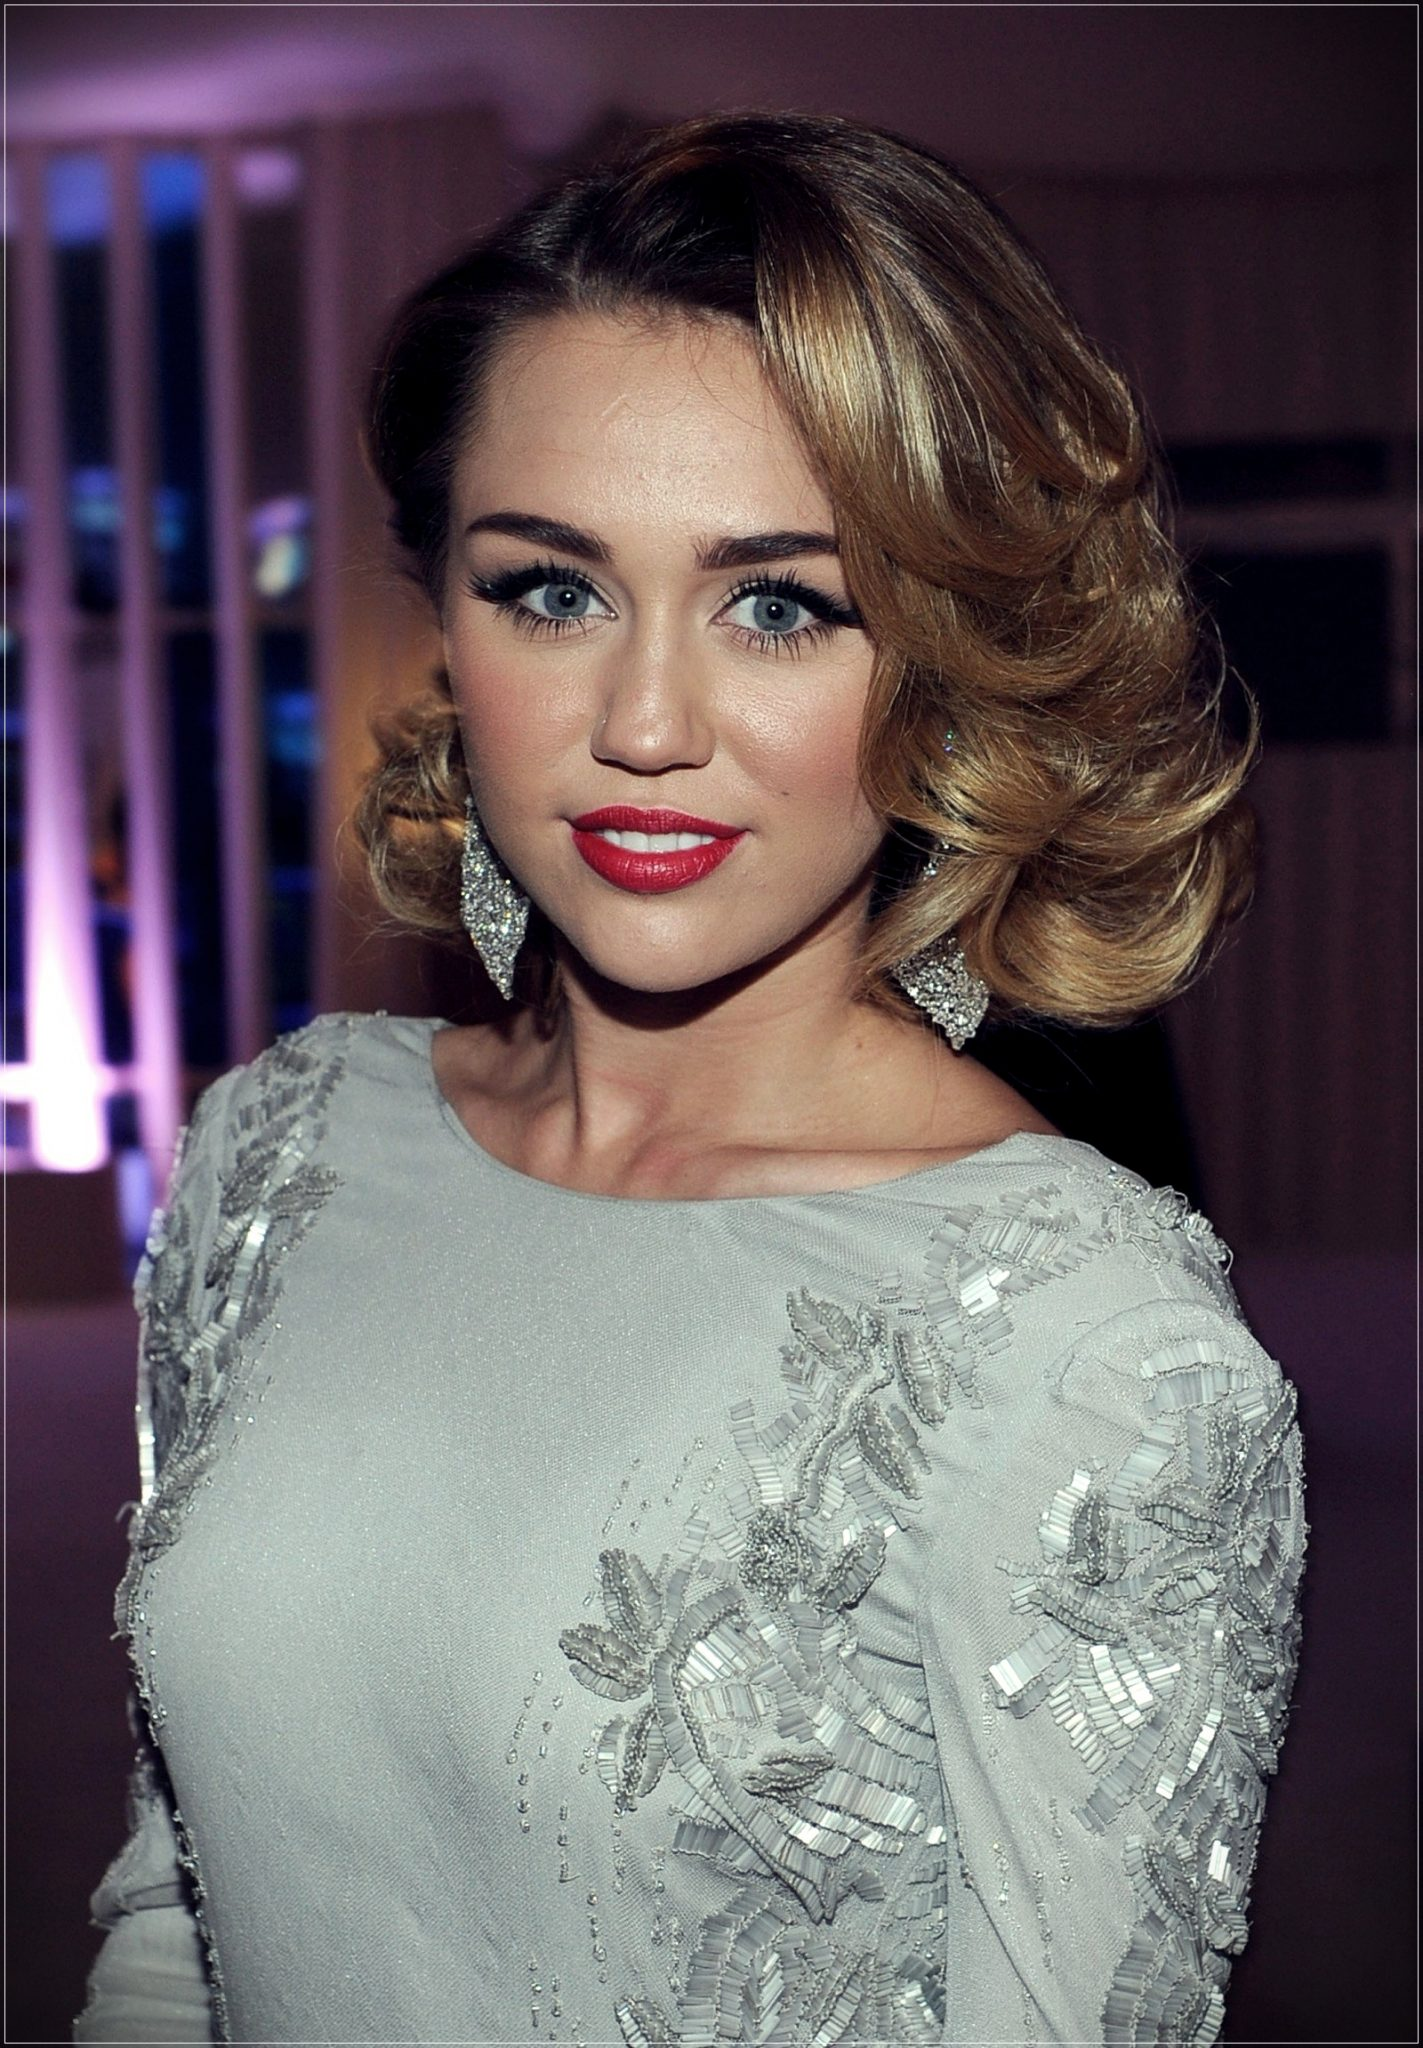 prom hairstyles for short hair 5 - Choose the perfect hairstyle for your short hair